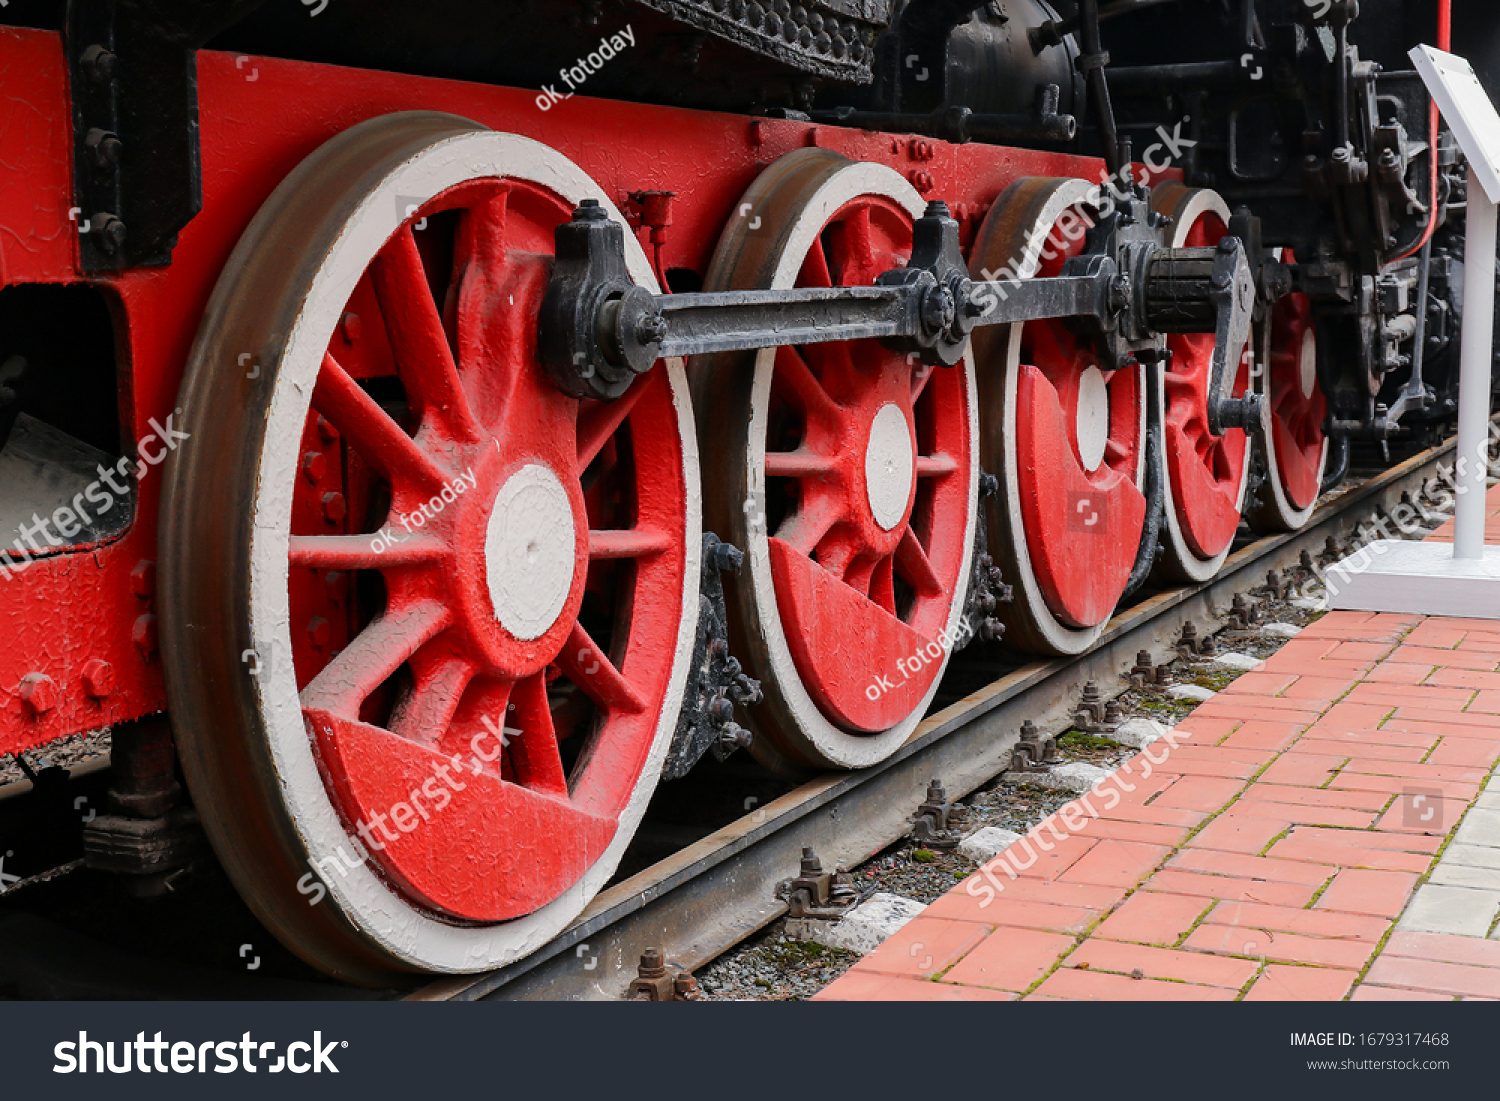 Wheels of a steam locomotive of the Em series No. 725-12 1932. Russia, Novosibirsk, Museum of Railway Engineering, May 9, 2018